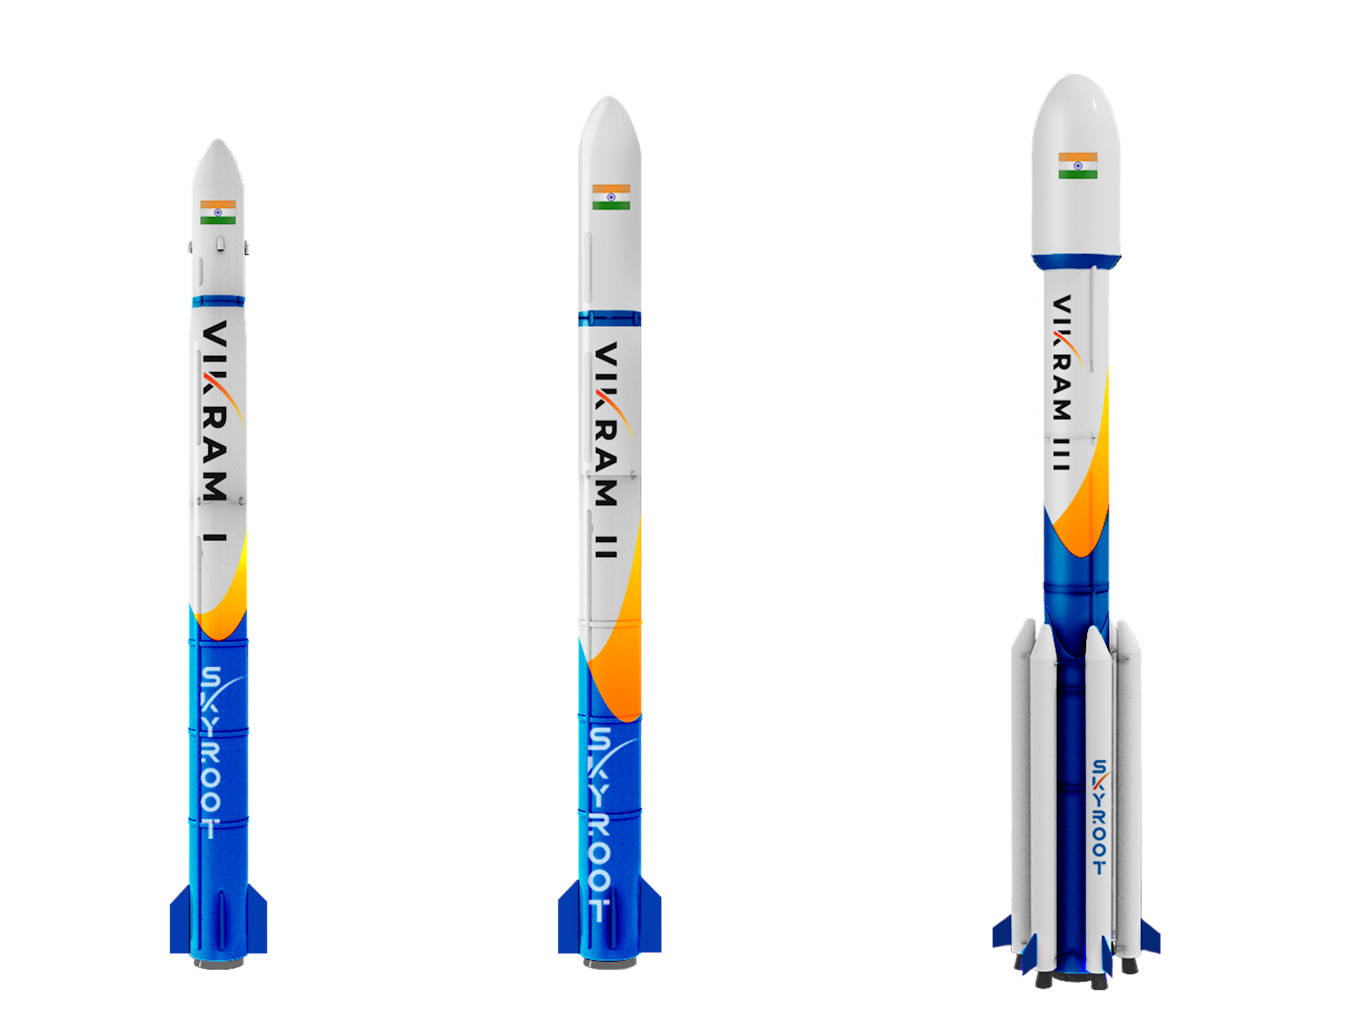 India's first-ever privately designed and developed rocket is a step closer to becoming a reality in 2021